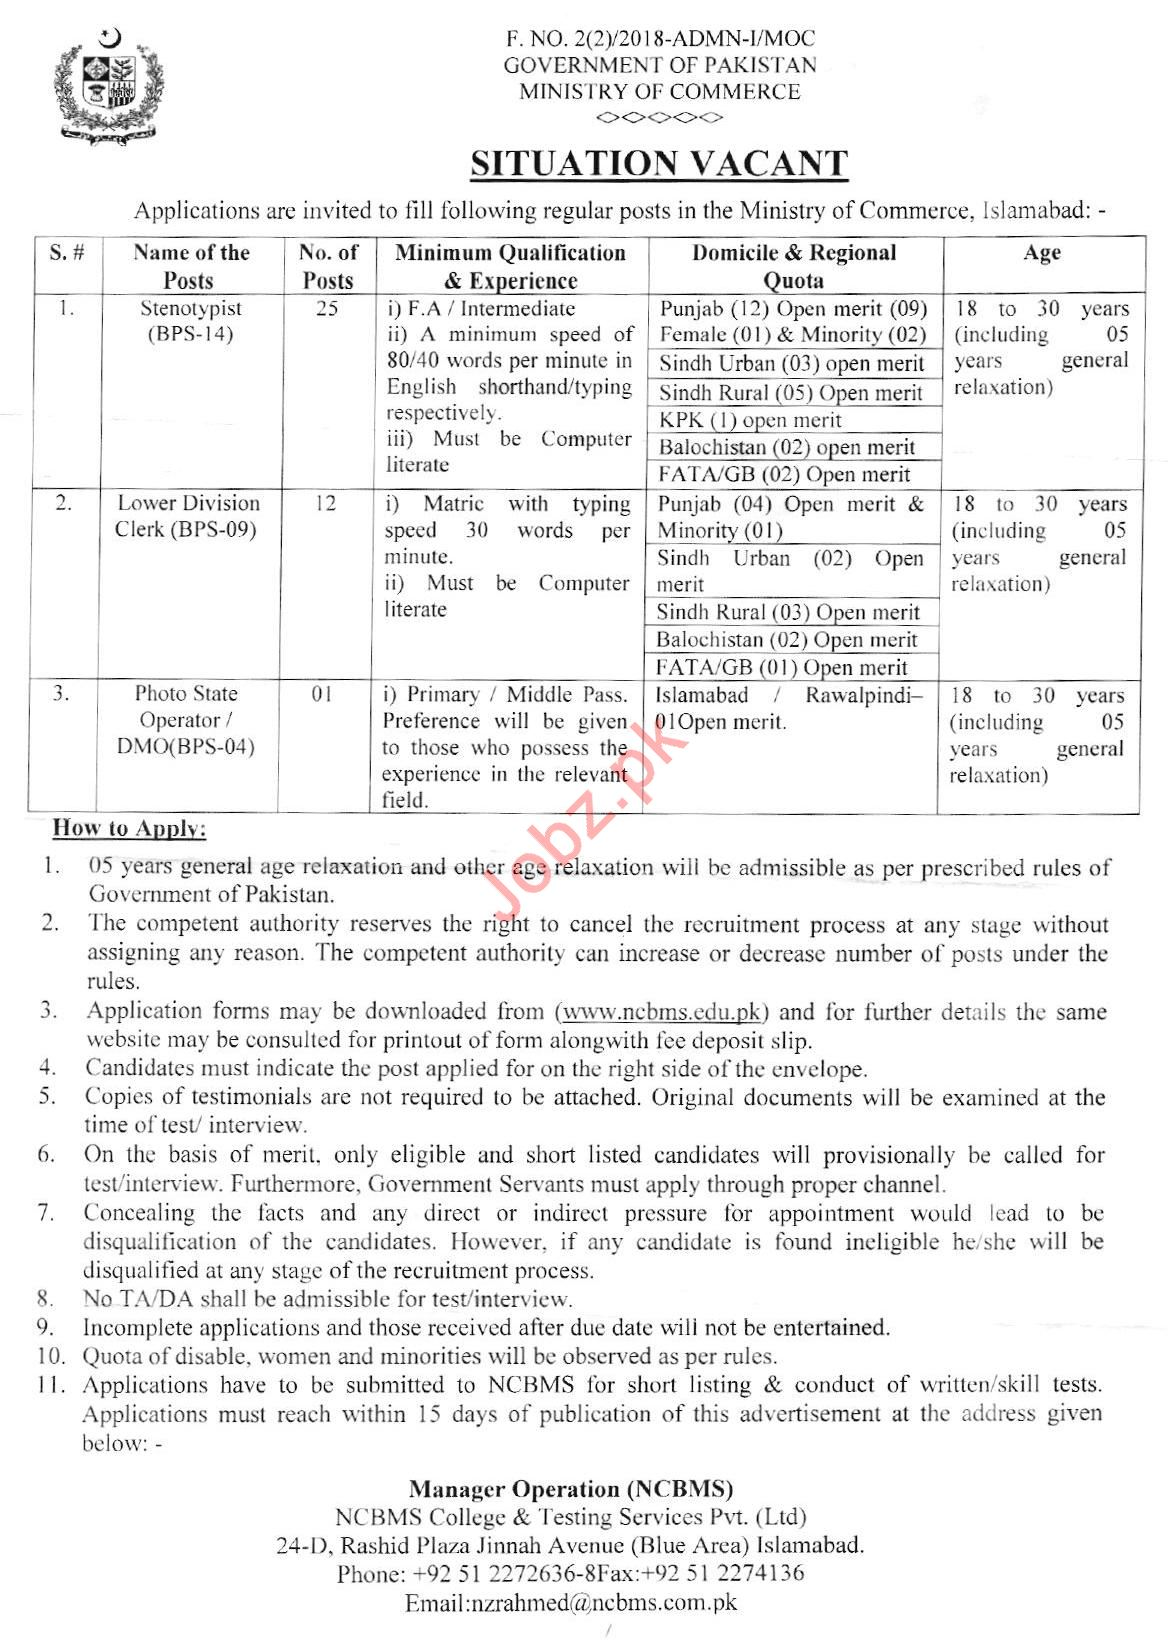 Ministry of Commerce Jobs 2020 in Islamabad